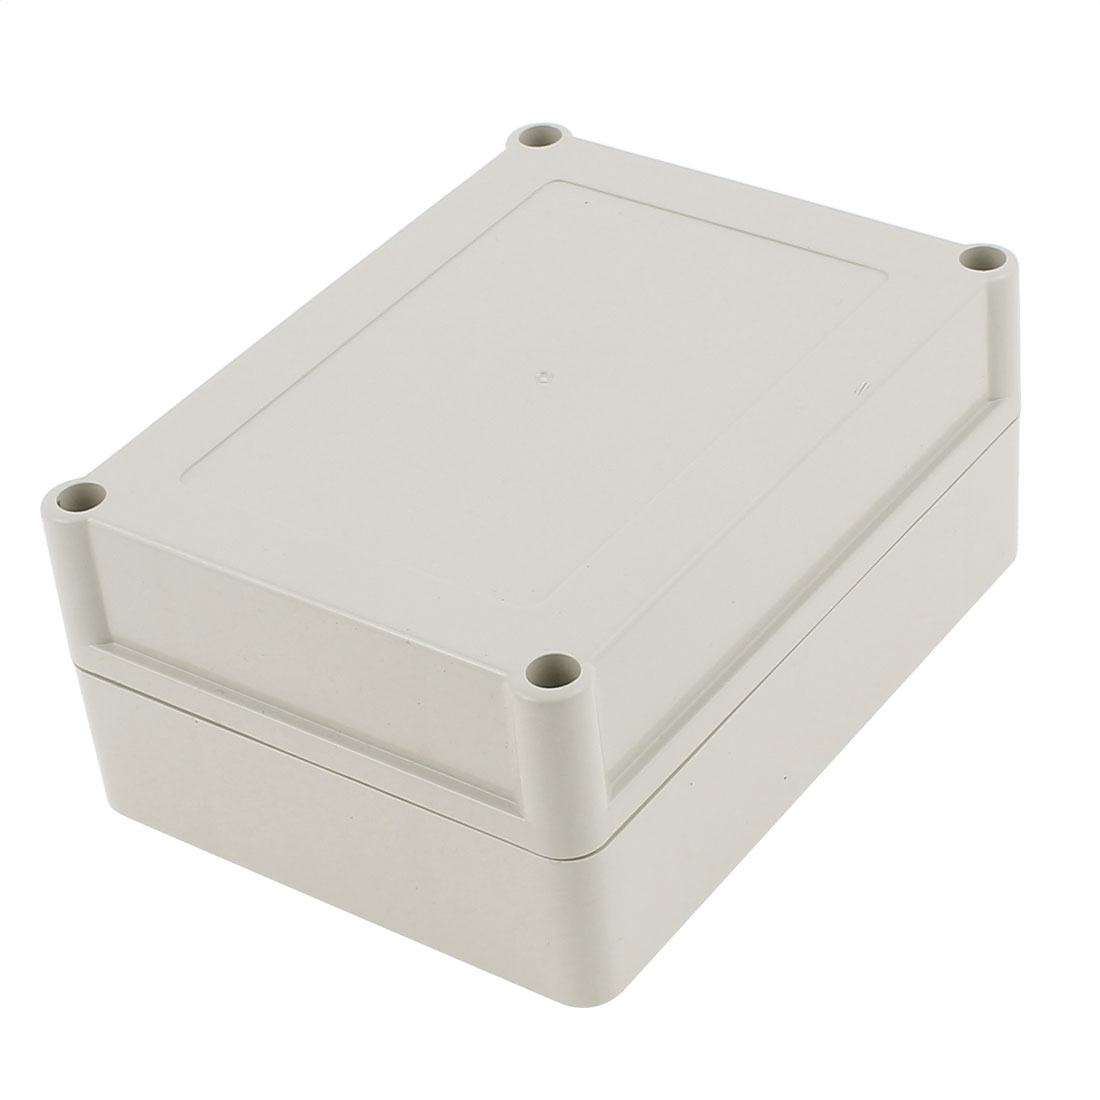 140 x 105 x 63mm Dustproof IP65 Junction Box DIY Terminal Connecting Enclosure